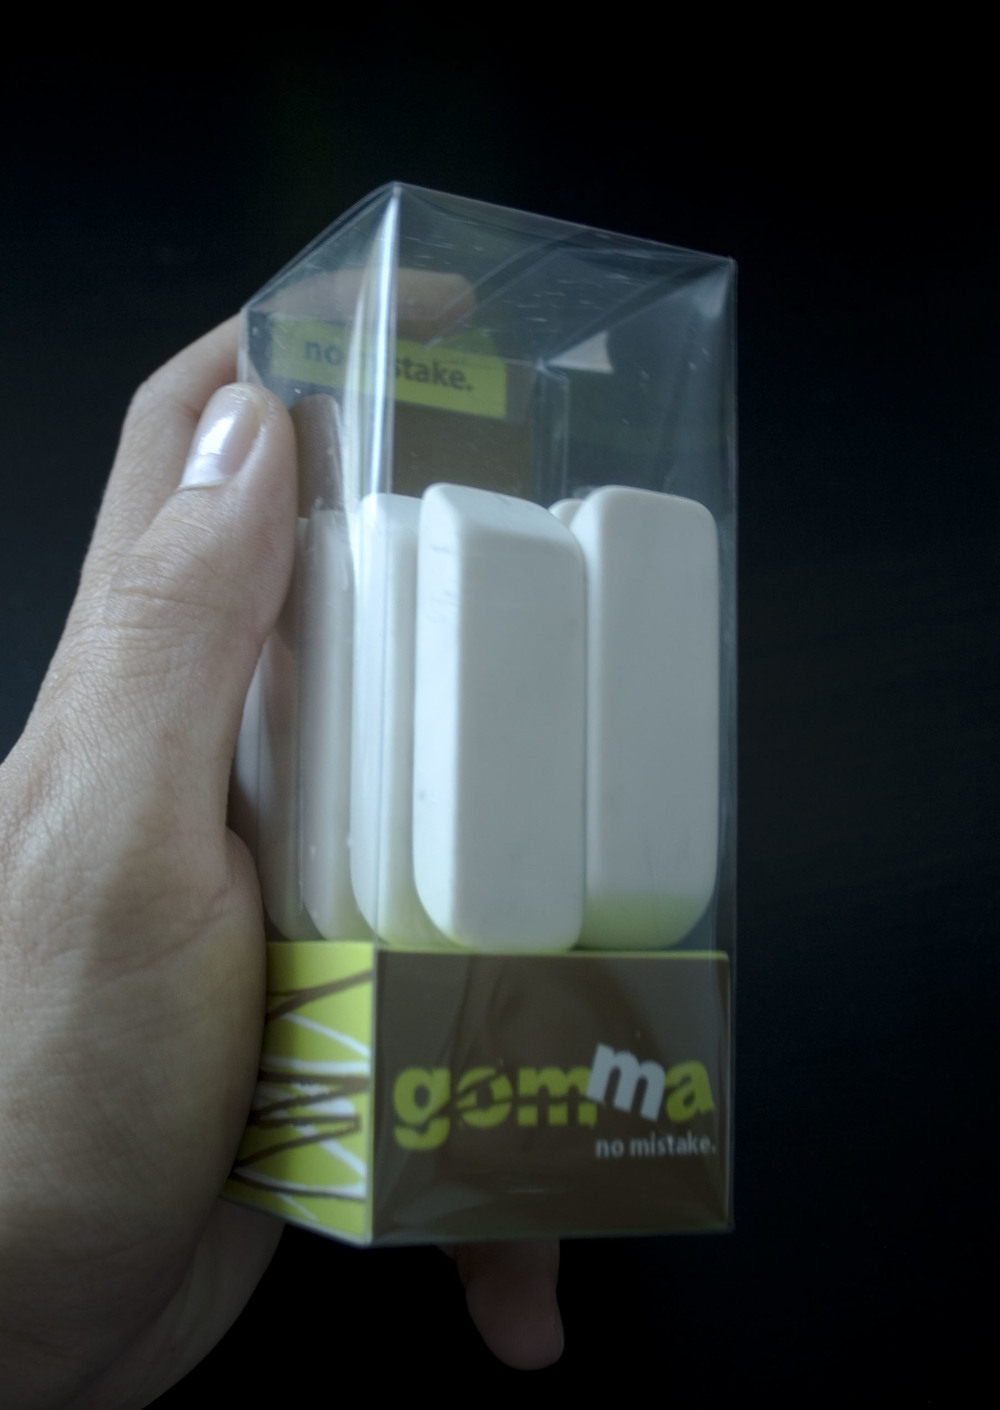 gomma_packaging_7.jpg